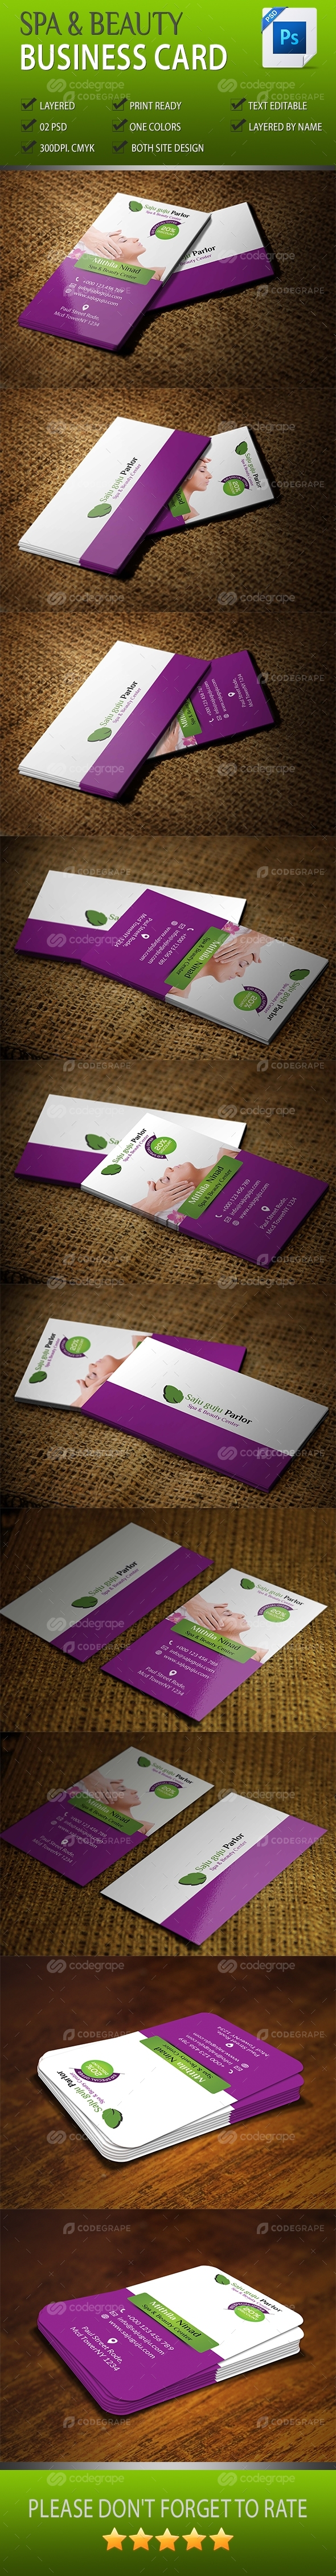 Spa And Beauty Business Card Vol-03